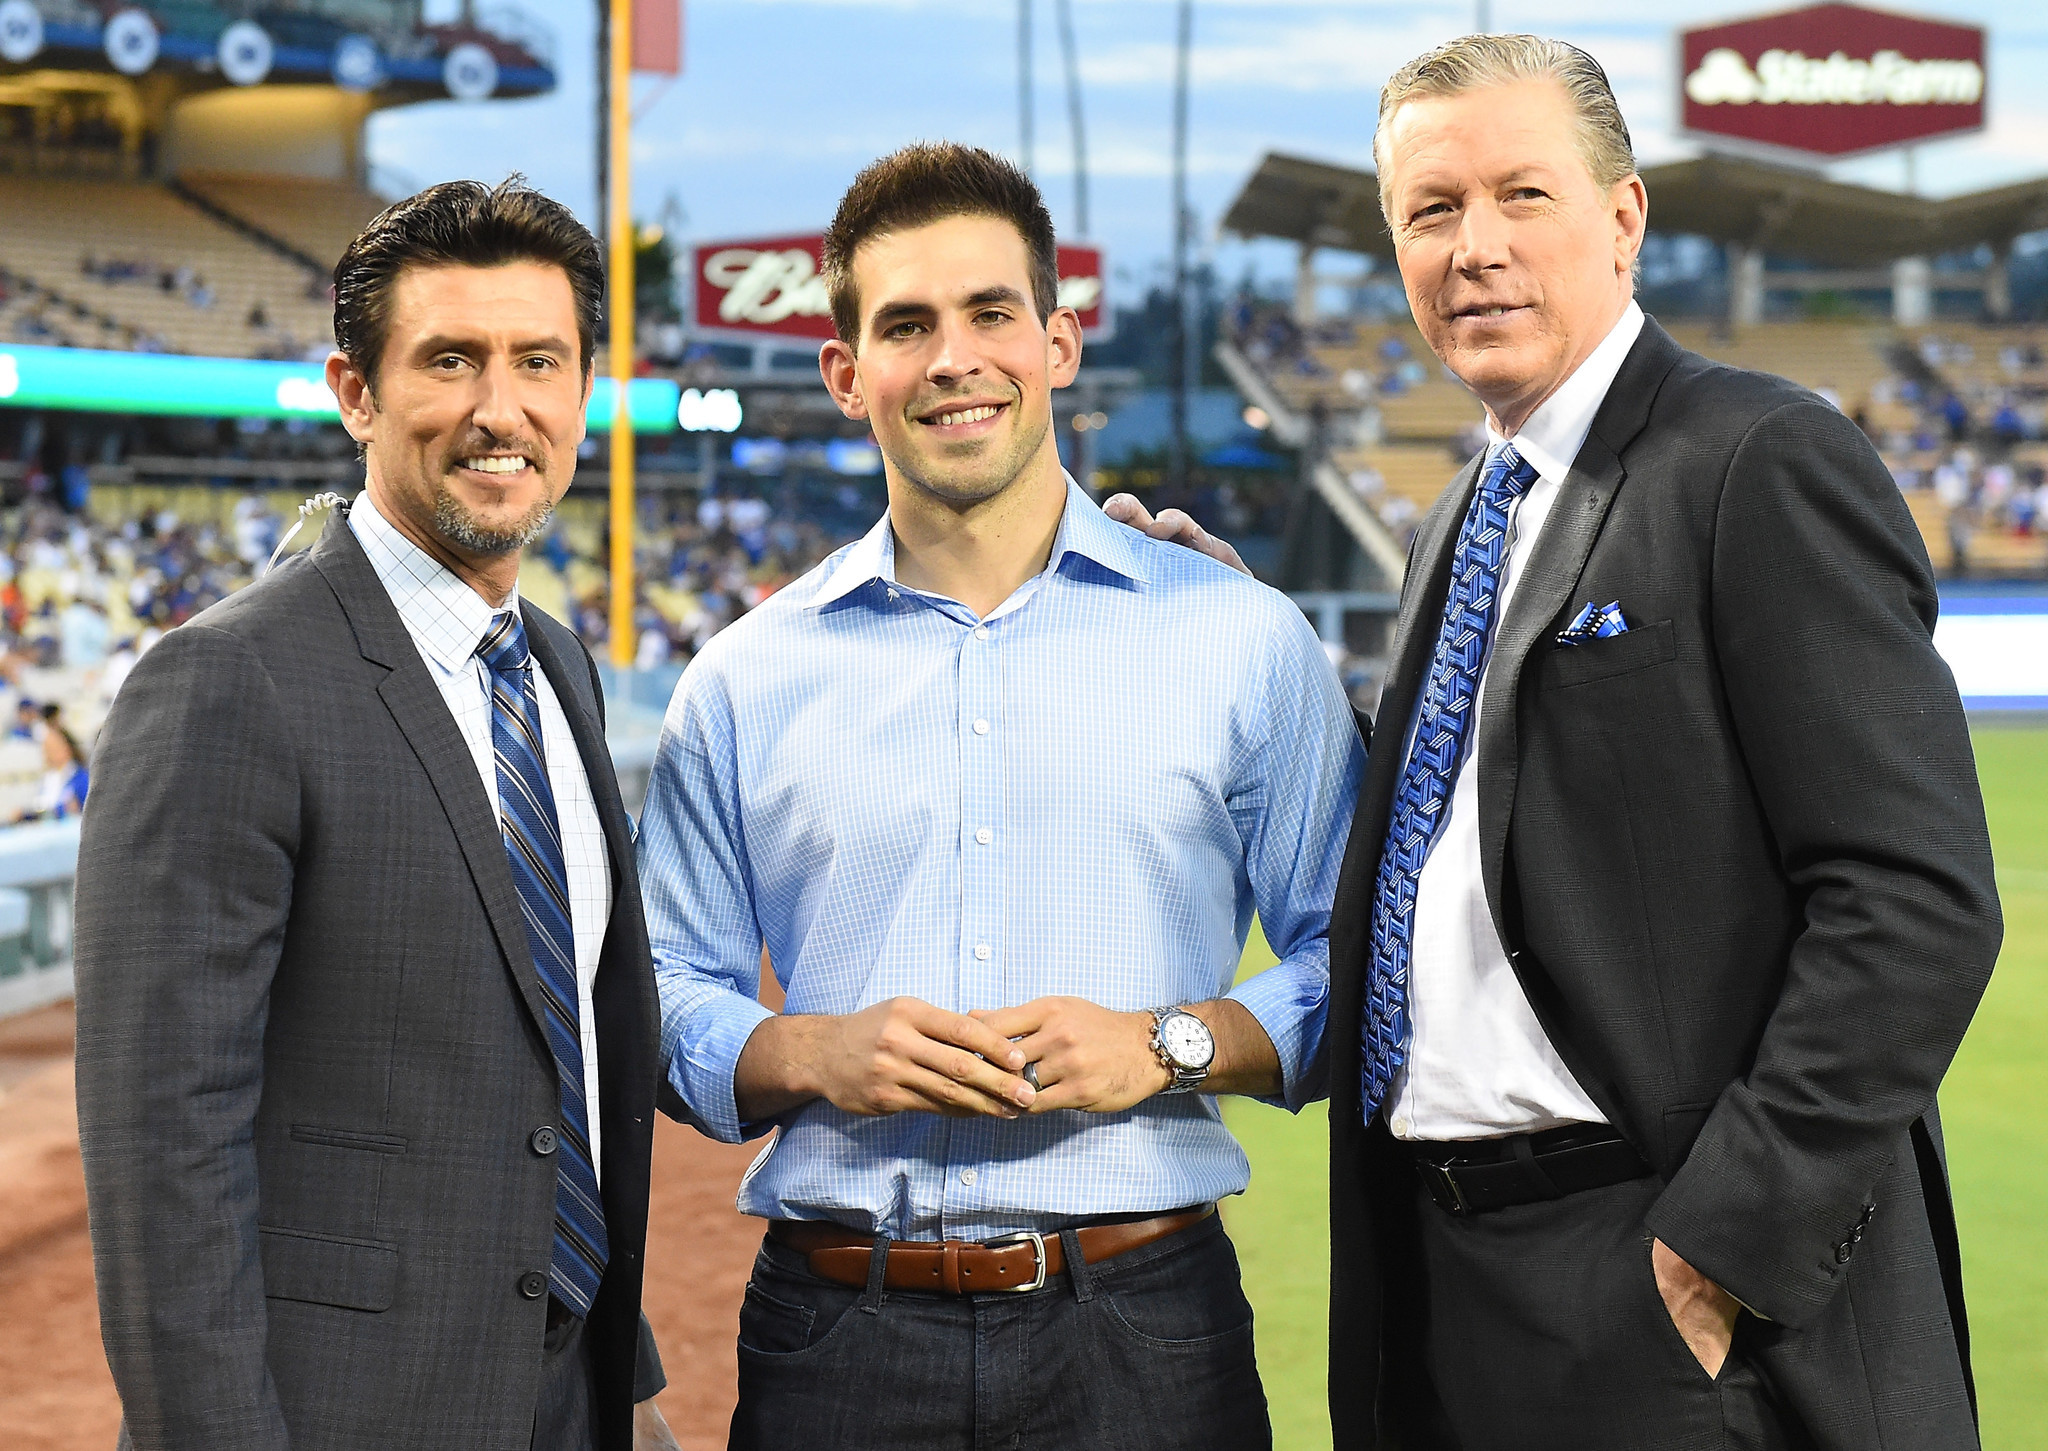 Dodgers Dugout: What Advice Did Vin Scully Pass On? Dodgers Announcer Joe  Davis Answers Your Questions